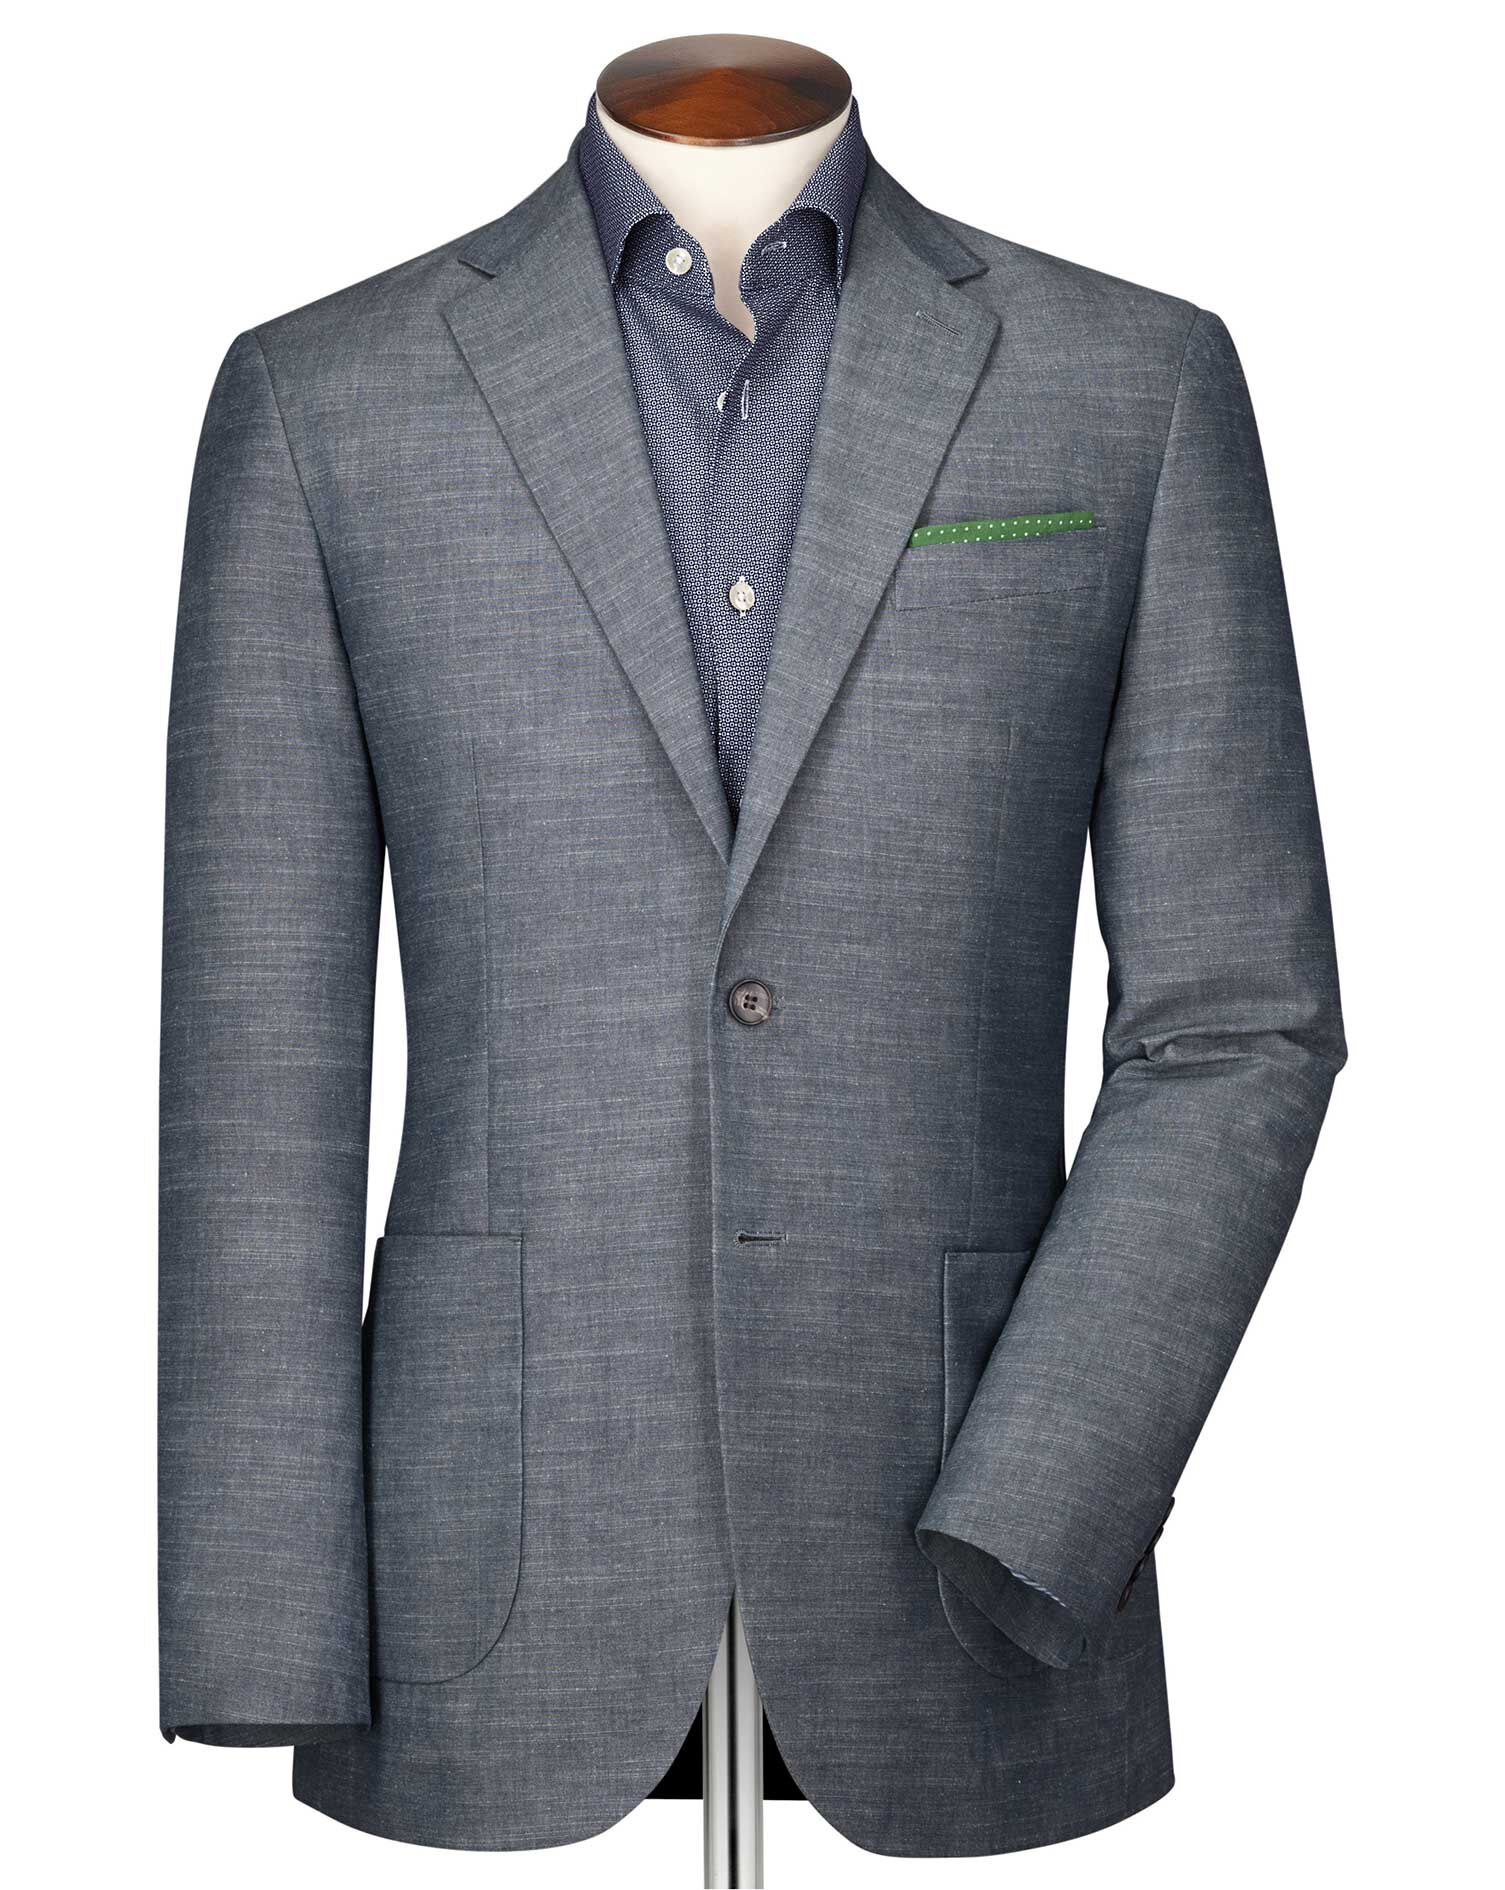 Classic Fit Chambray Semi-Plain Cotton Jacket Size 38 Long by Charles Tyrwhitt